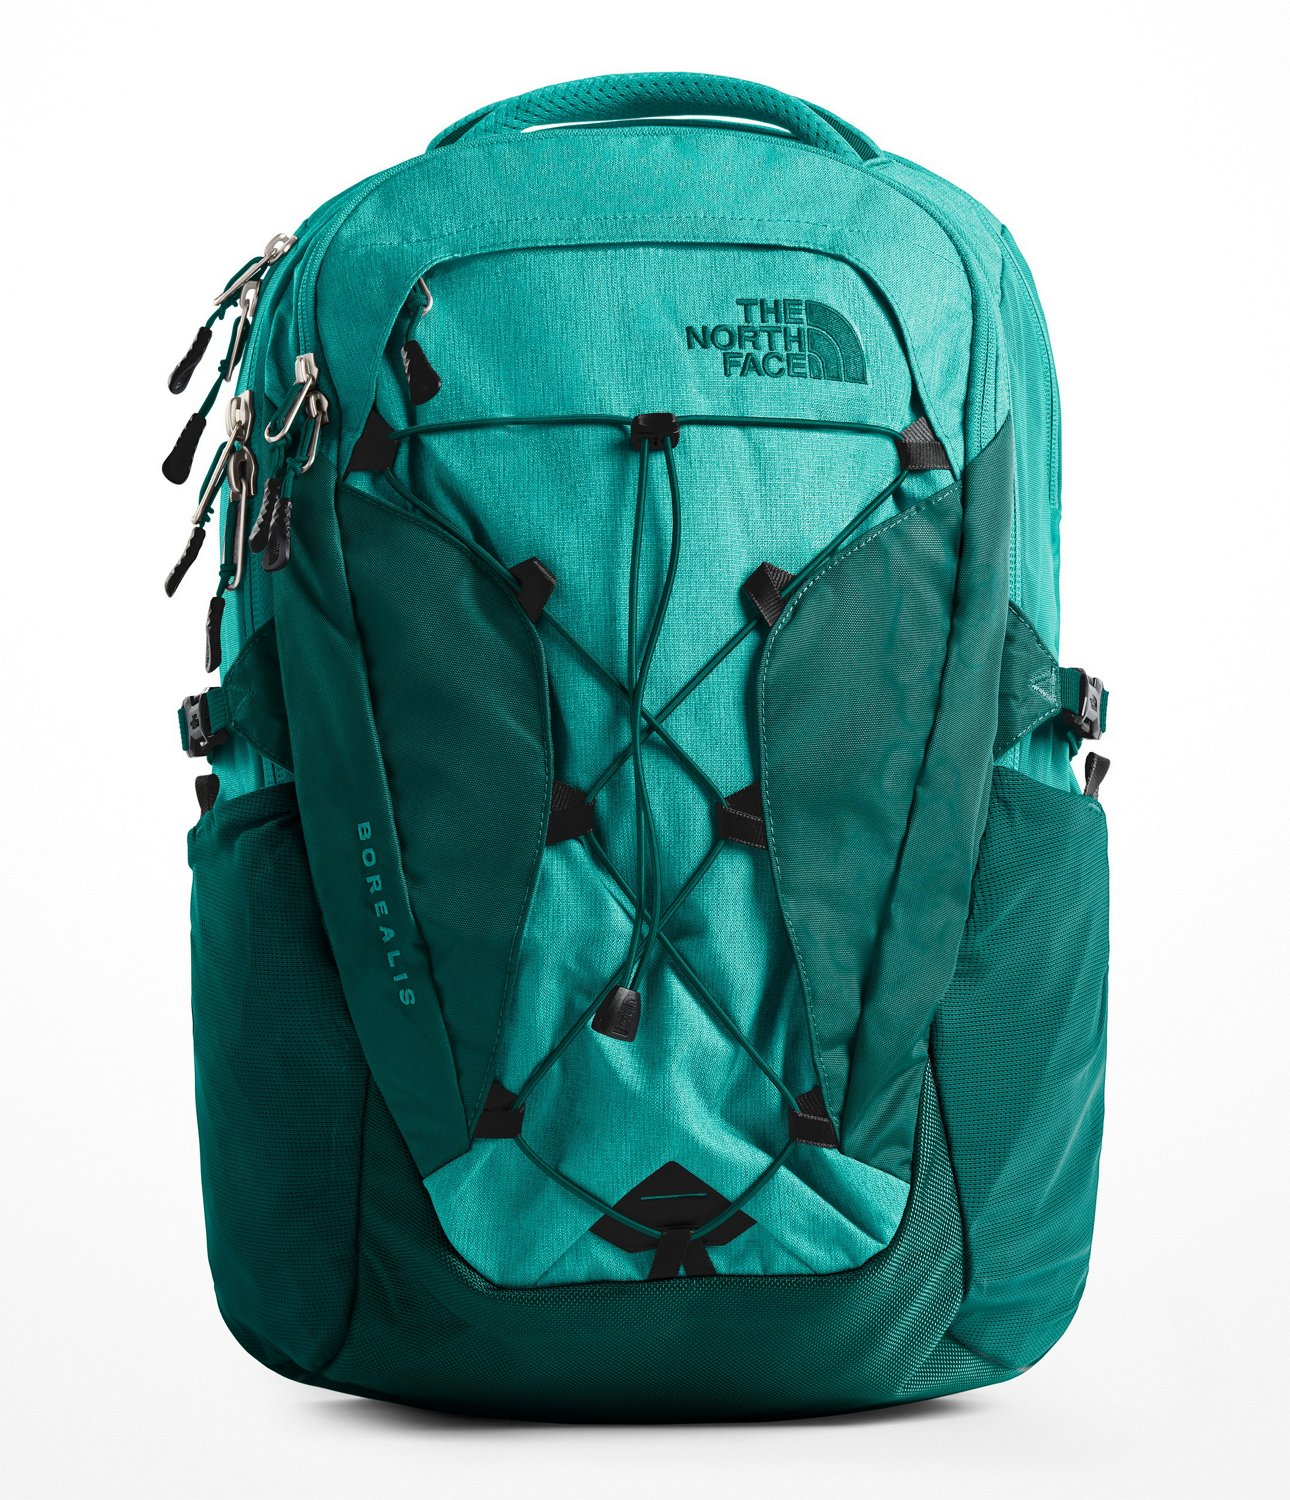 8e689a568 Display product reviews for The North Face Mountain Lifestyle Borealis  Backpack